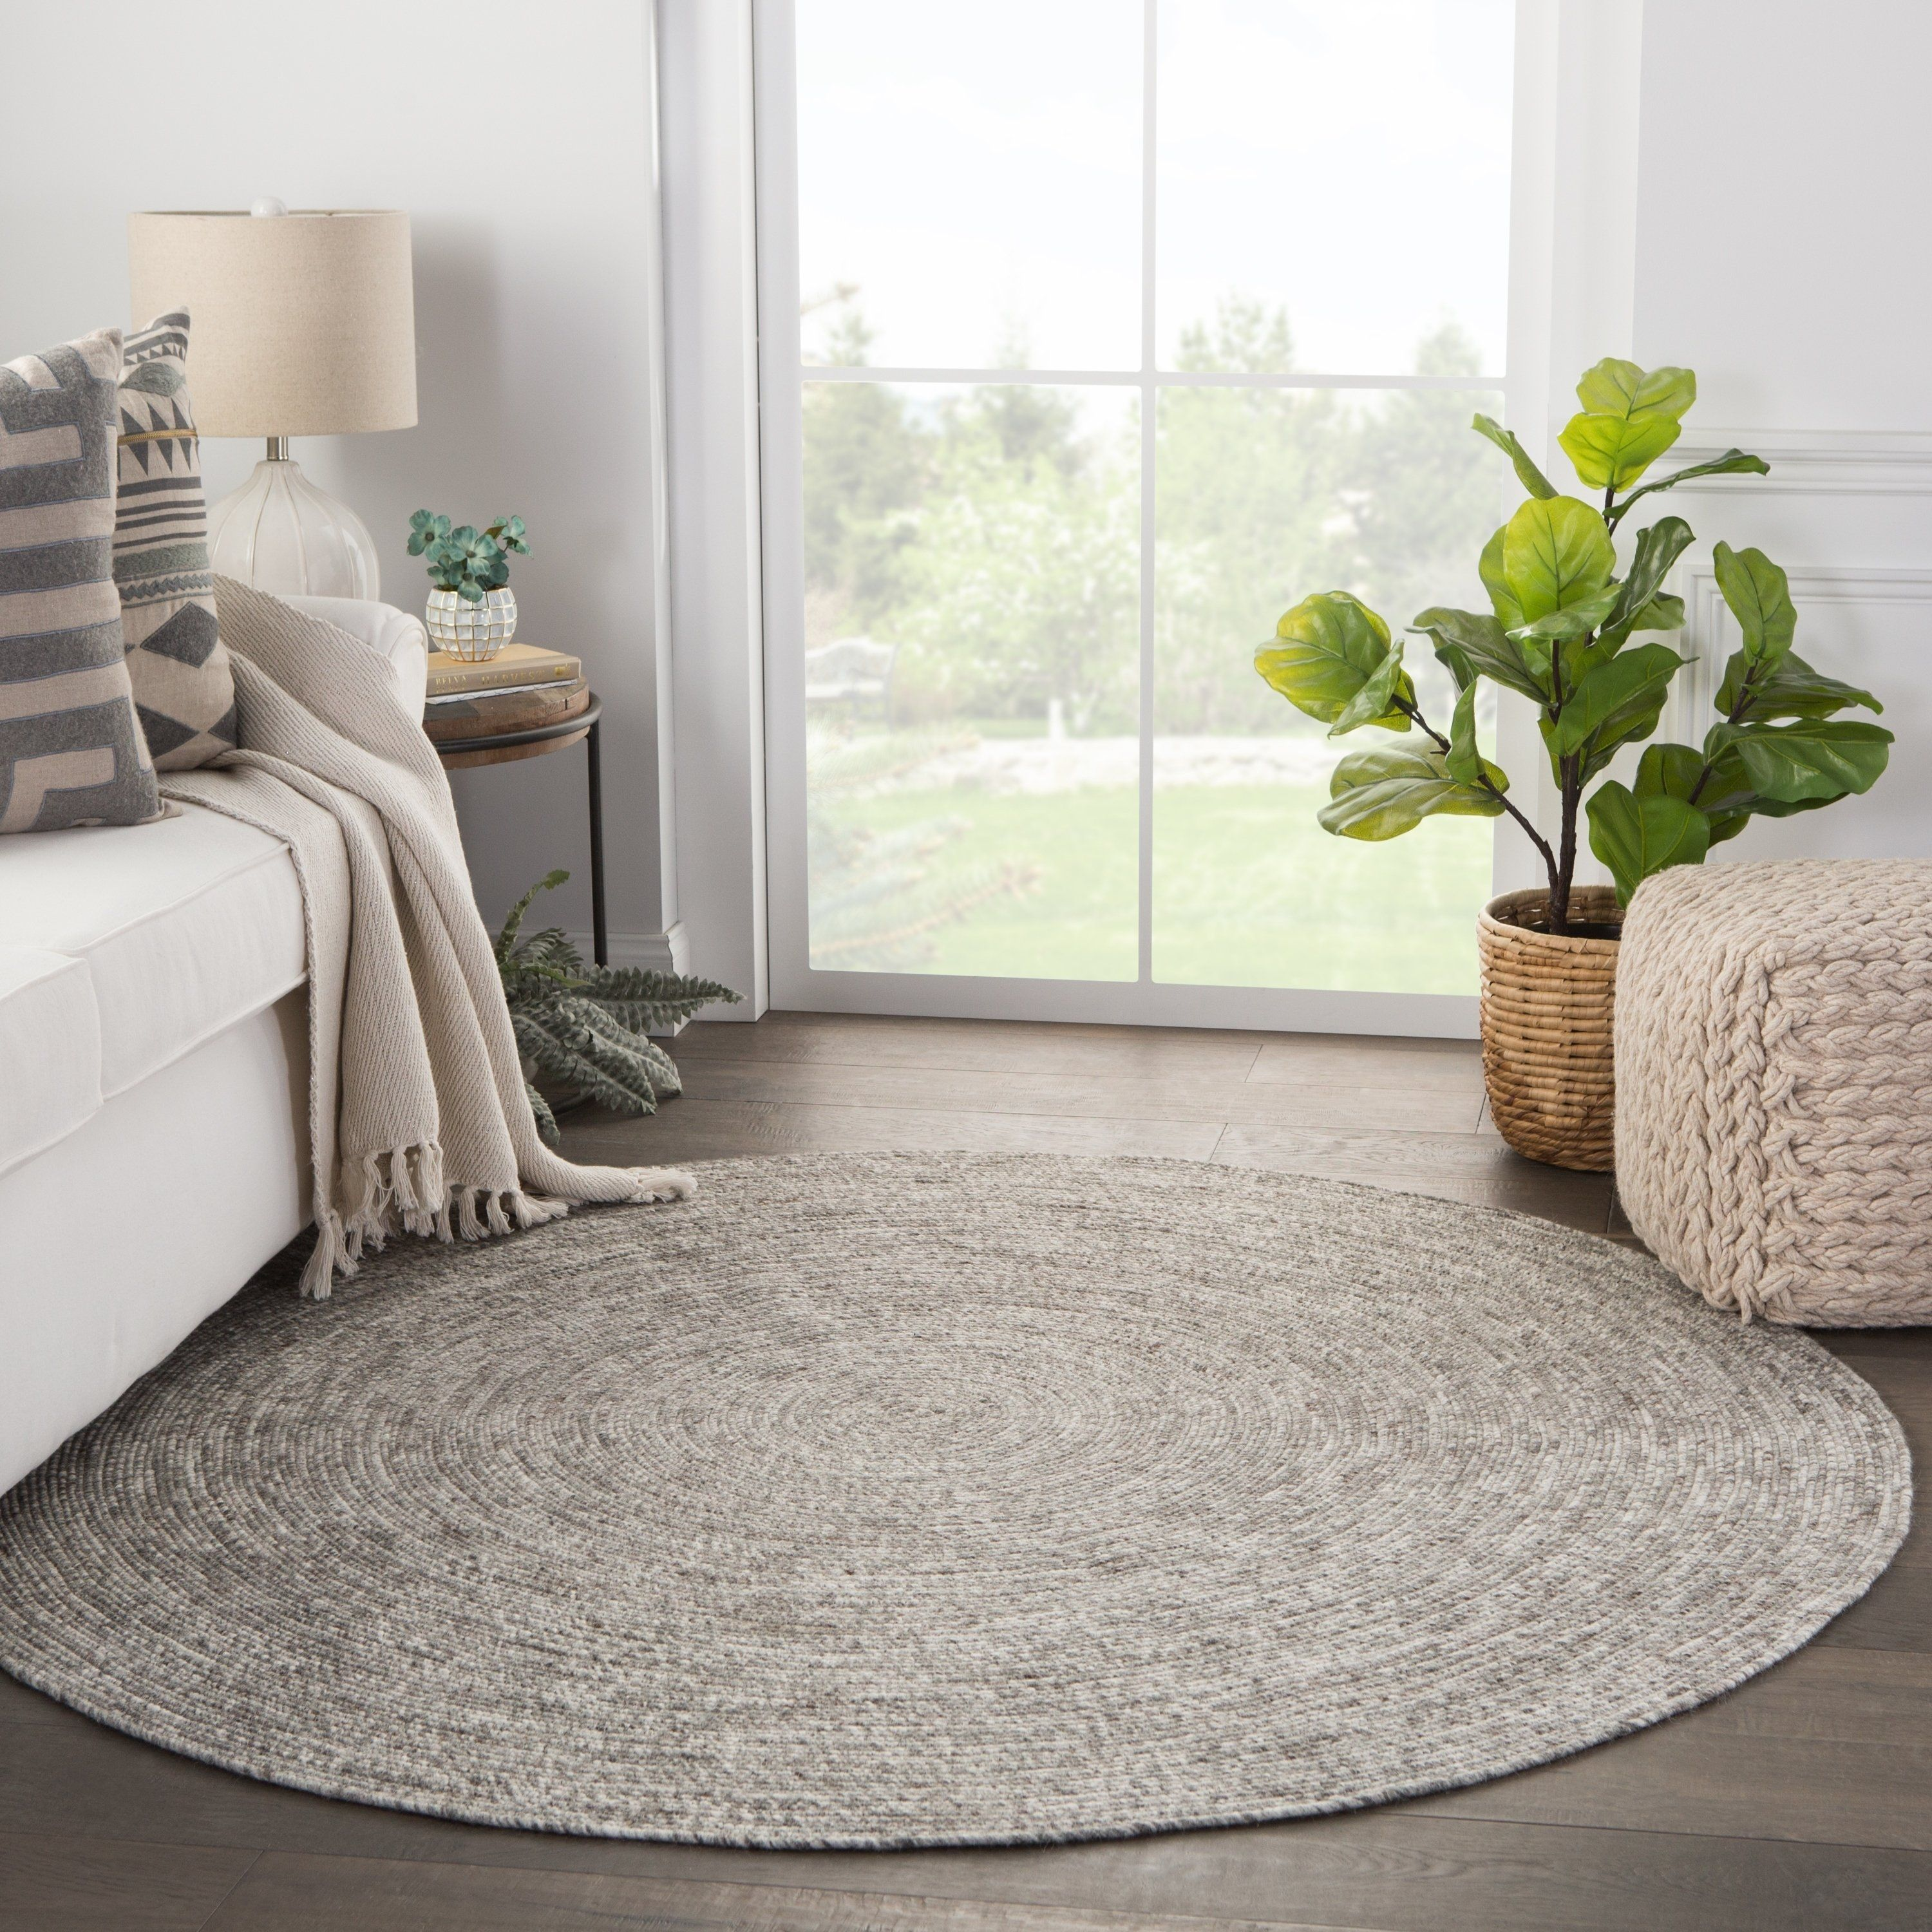 Mindra Natural Solid Round Area Rug 6 Round Gray White